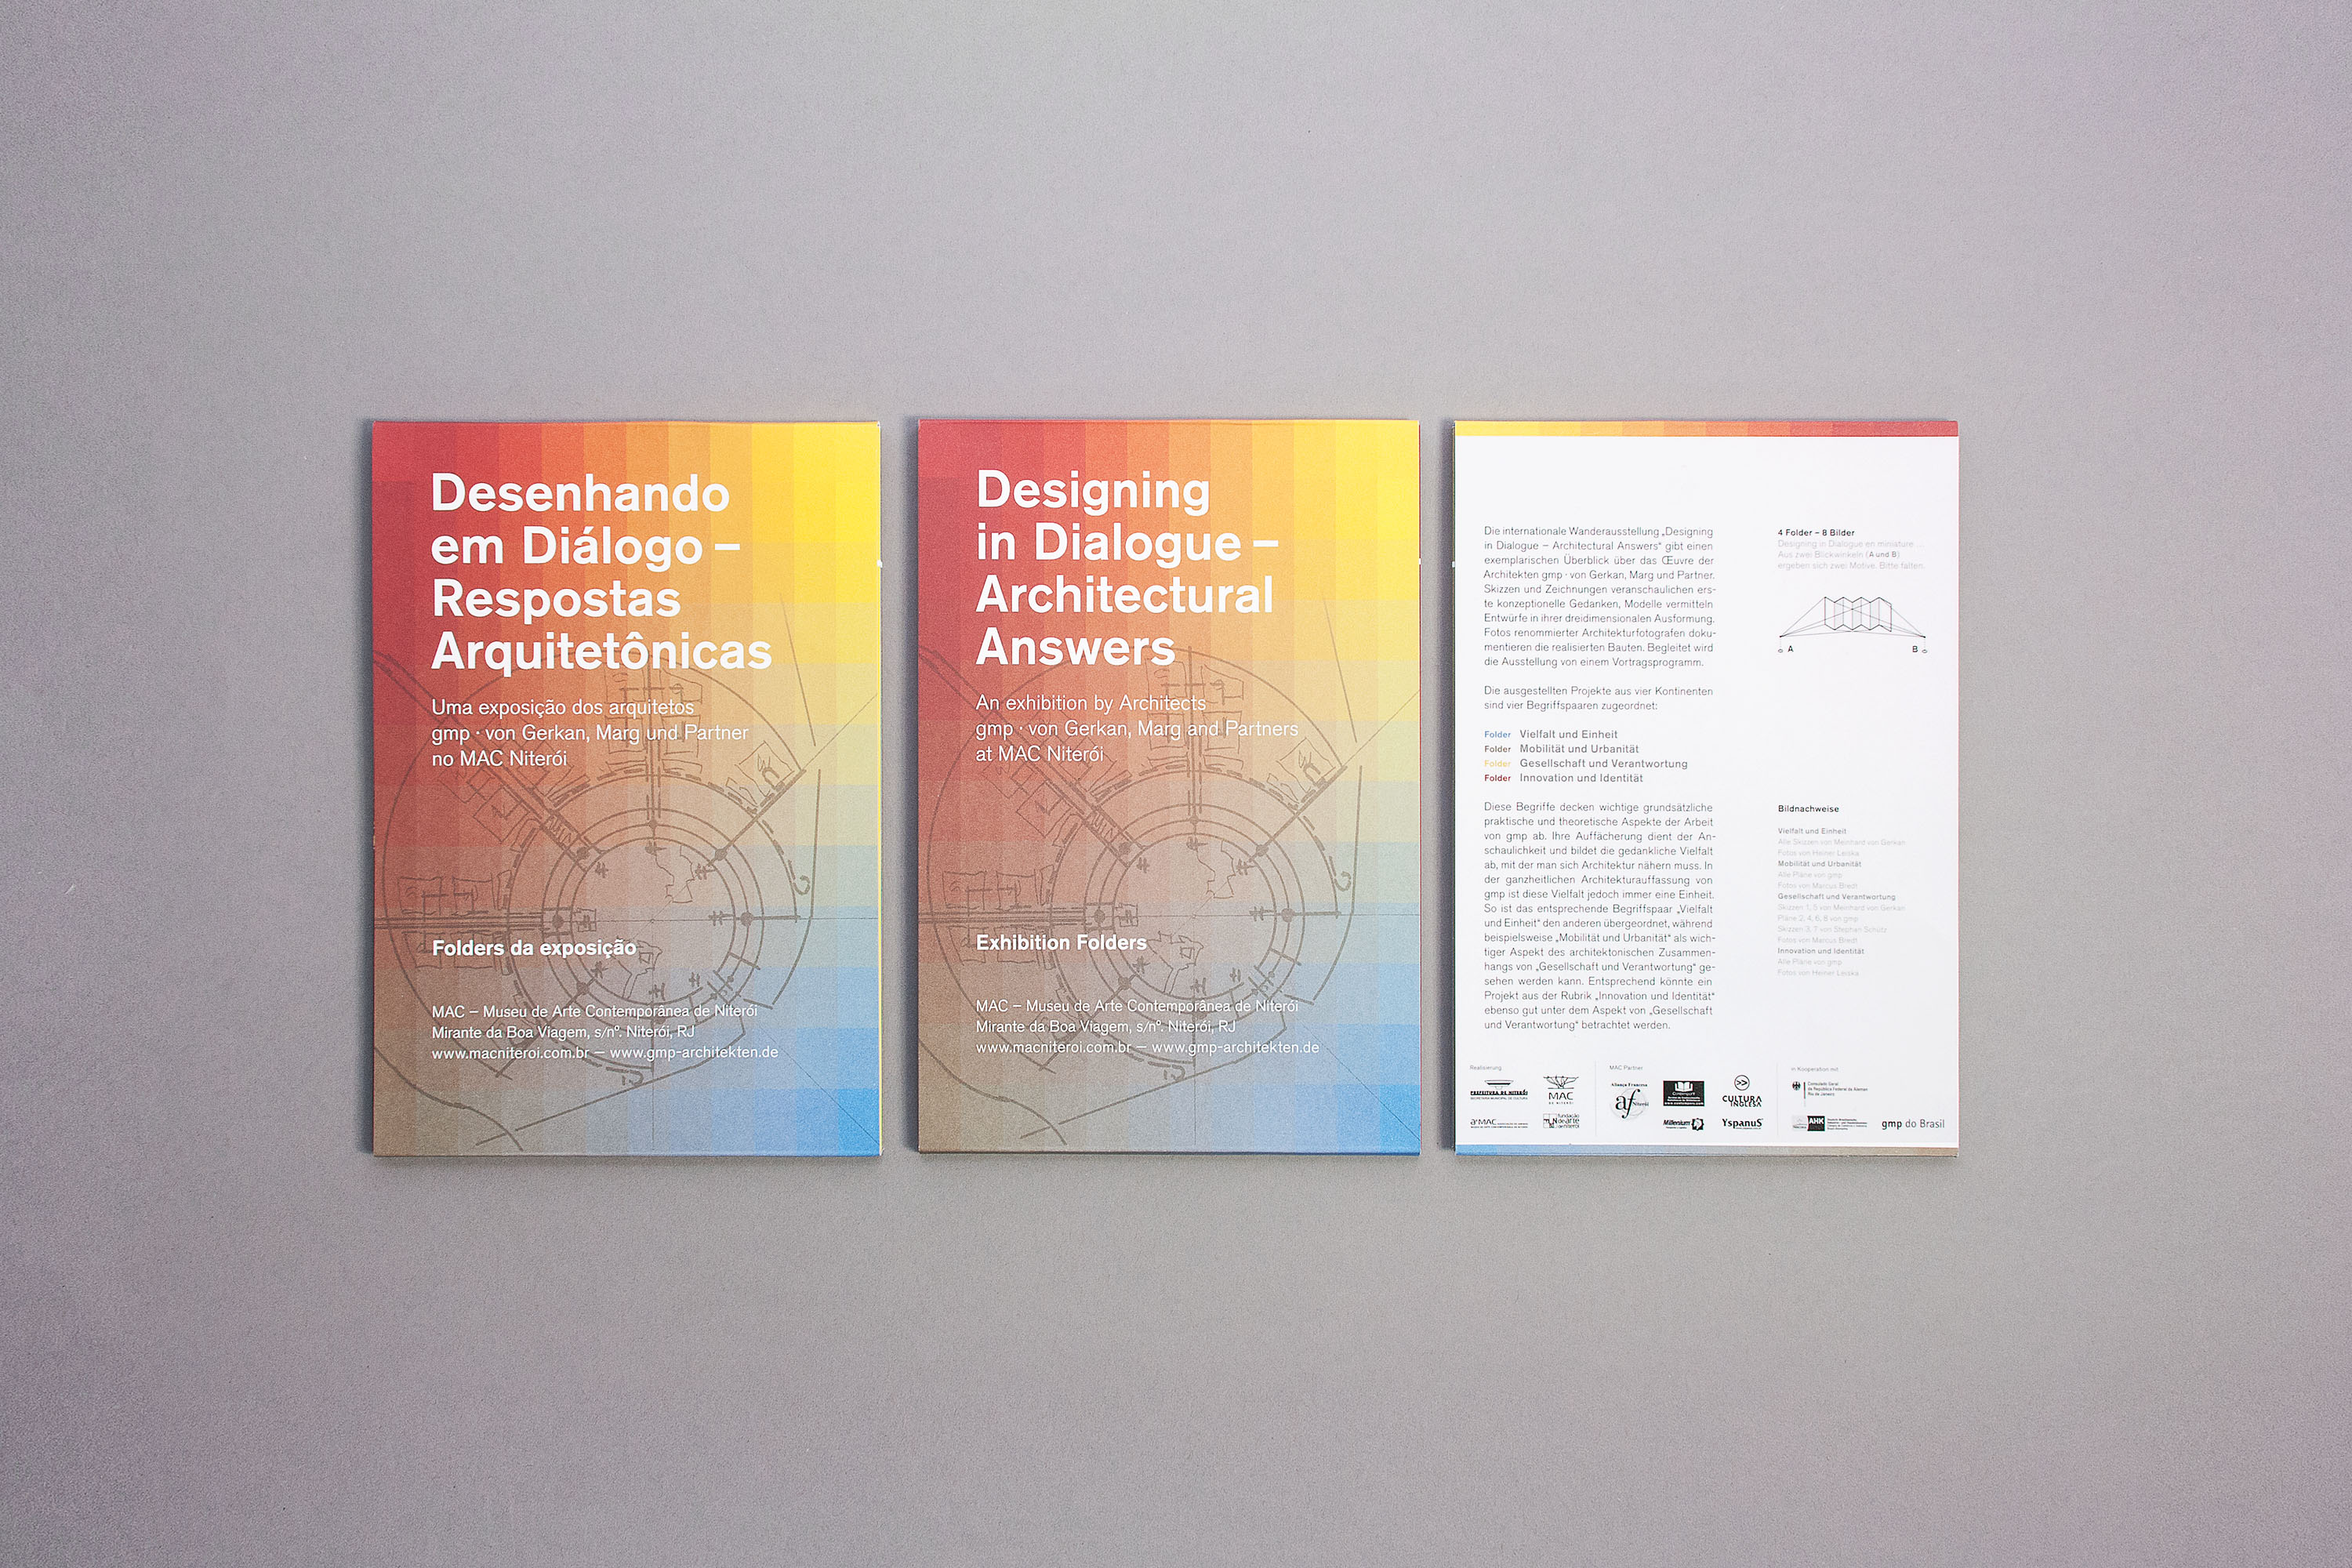 Rio de Janeiro, Designing in Dialogue, gmp, Architekten von Gerkan, Marg und Partner,Architectural Answers, Ausstellung, ON Grafik, wibberenz' design